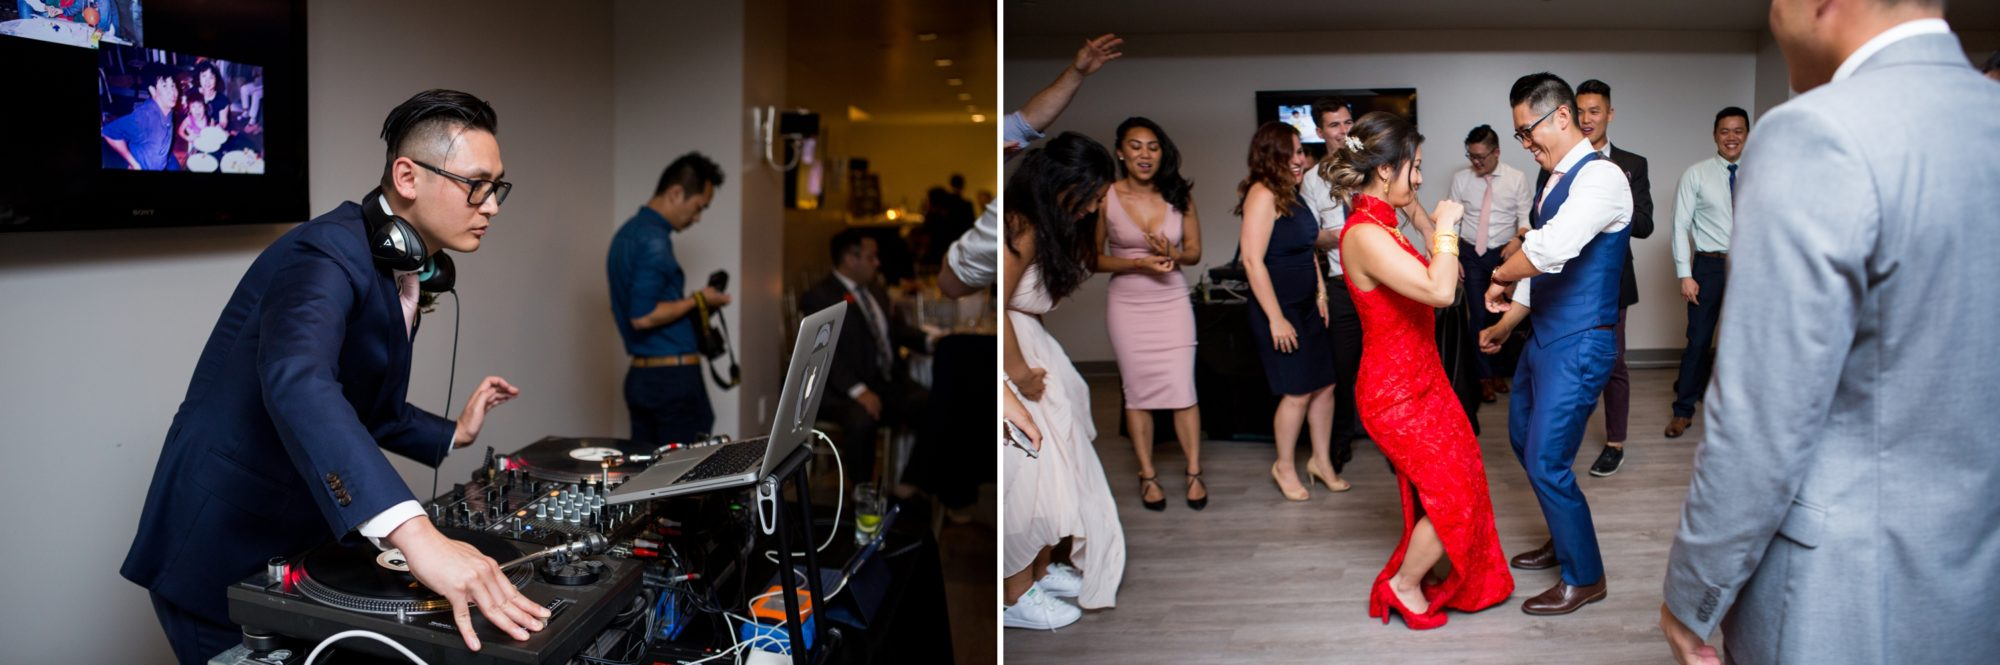 DJ Party Dance Toronto Chinese Korean Wedding Zsuzsi Pal Photography